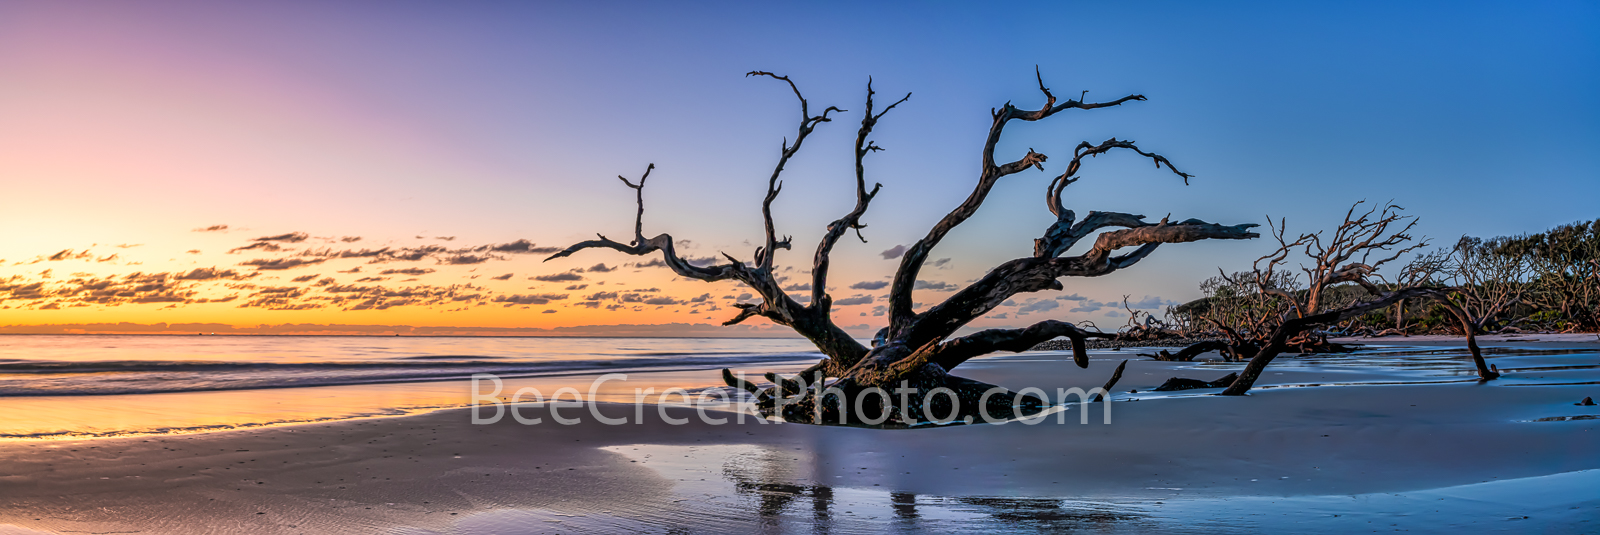 jekyll island, driftwood beach, boneyard beach, sunrise, colorful, sand, alantic ocean, deadwood, east coast, reflections, reflecting, colors, sky, geogia, wet sand, pano, panorama, golden isles, sea , photo